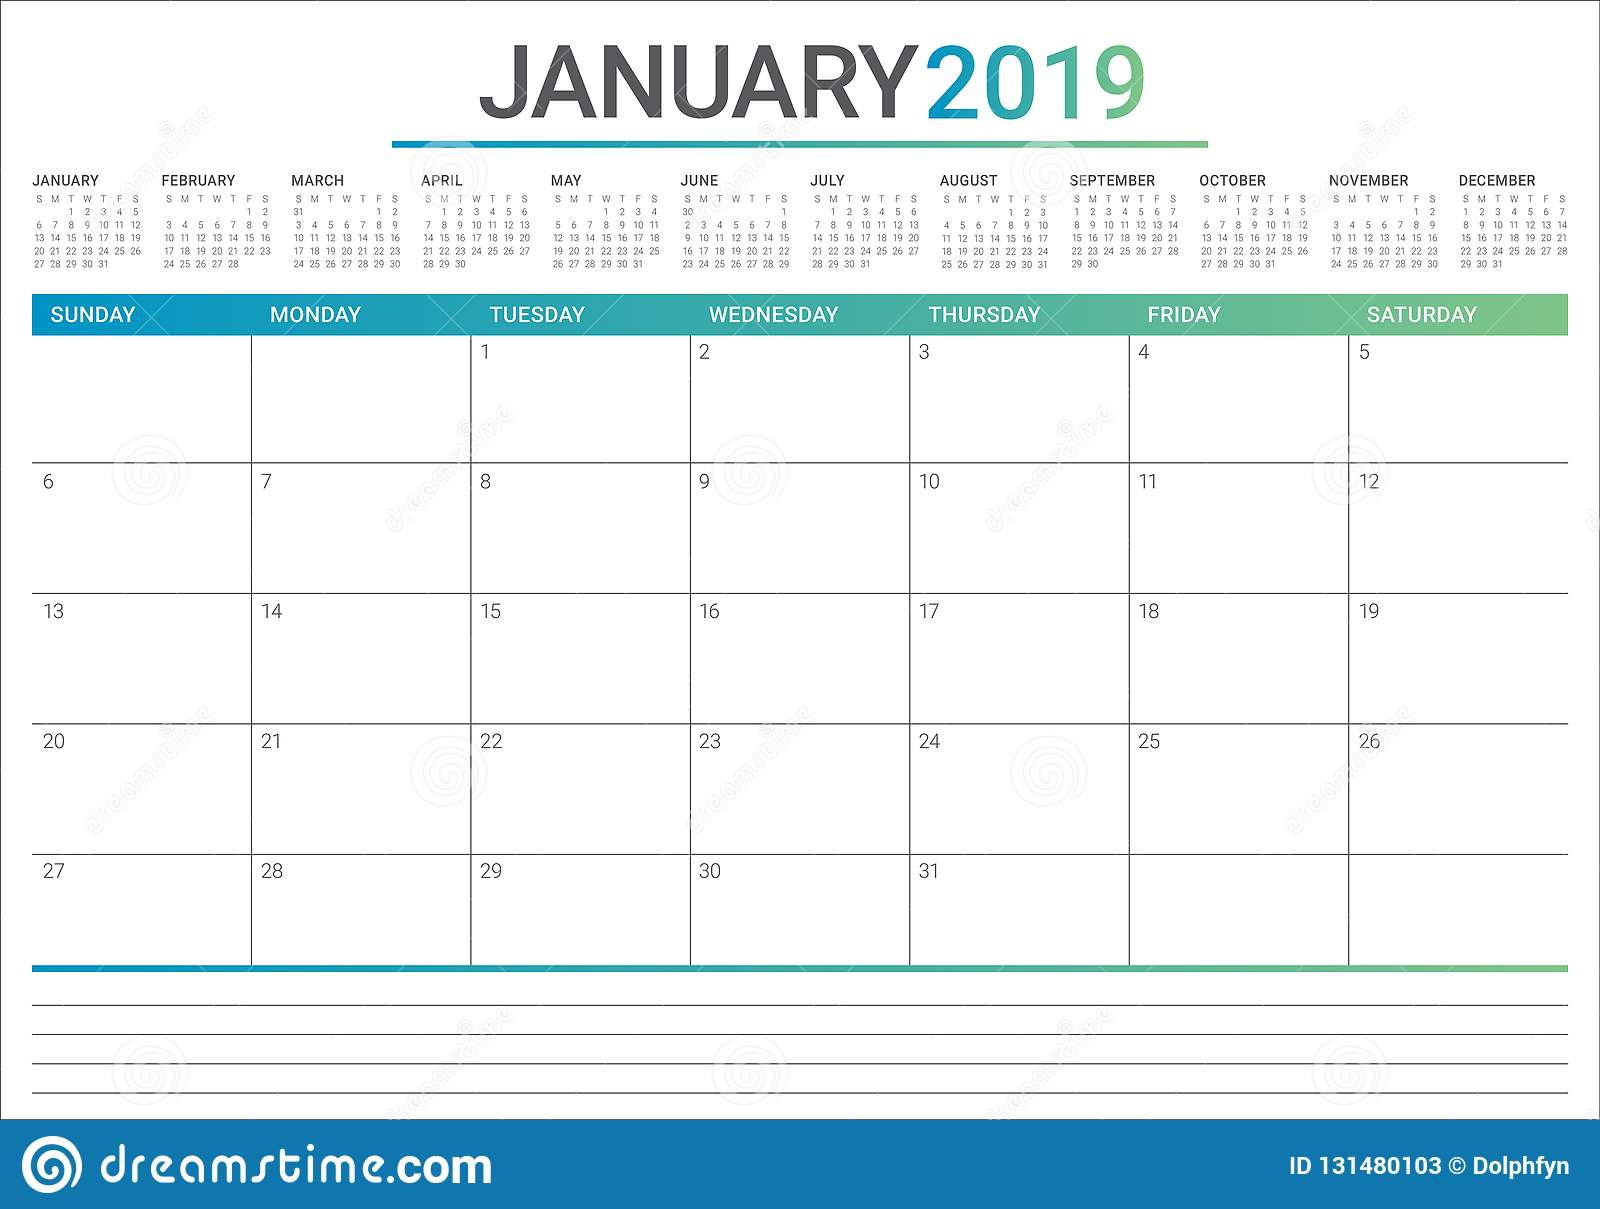 January 2019 desk calendar vector illustration, simple and clean design